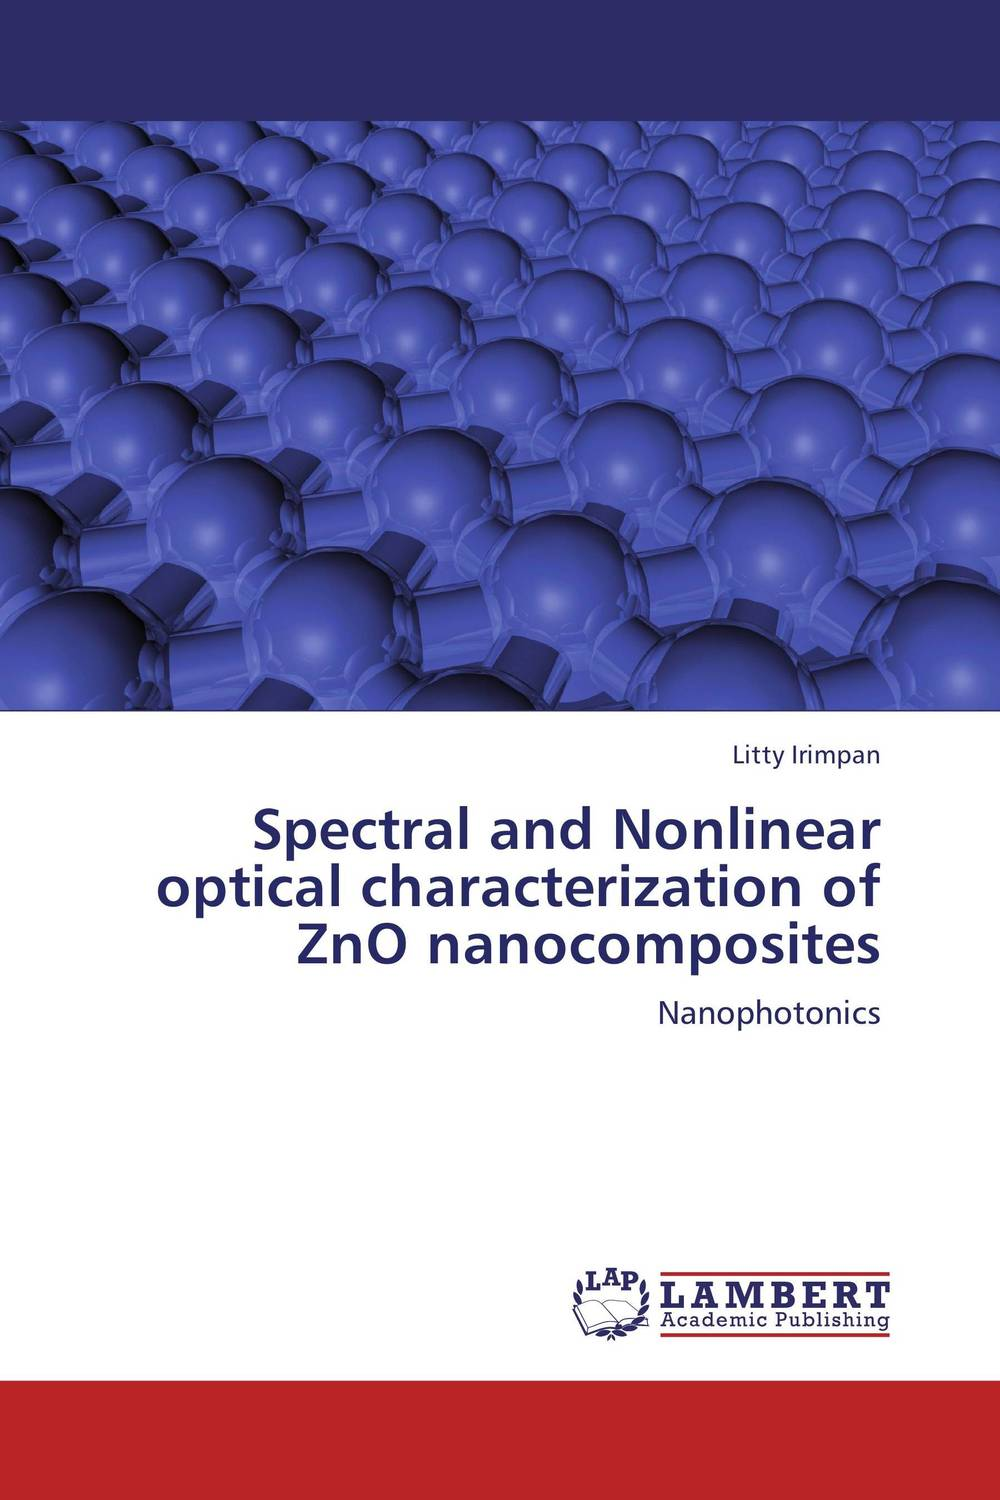 Spectral and Nonlinear optical characterization of ZnO nanocomposites mahmoud m ragab nazmi a mohammed and moustafa h aly wavelength conversion using nonlinear effects in optical fibers